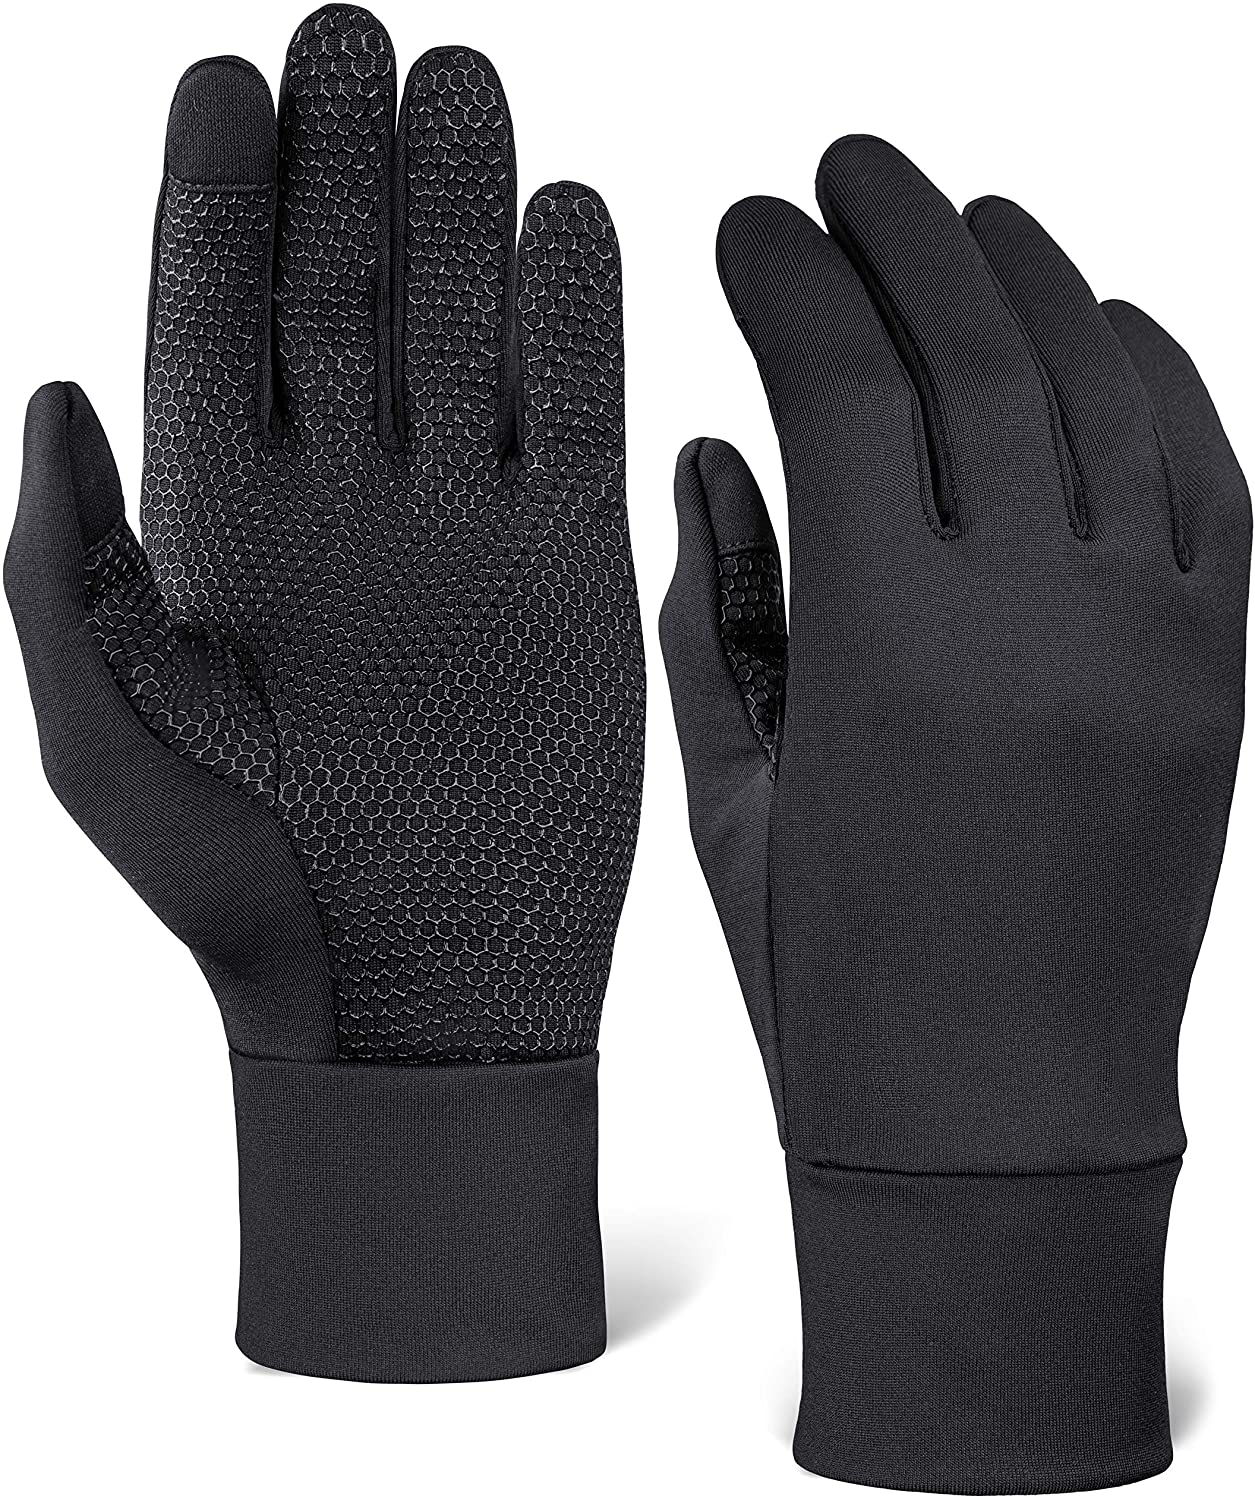 Touch Screen Running Gloves - Winter Glove Liners for Texting, Sports & Exercise - Lightweight Cold Weather Thermal Gloves